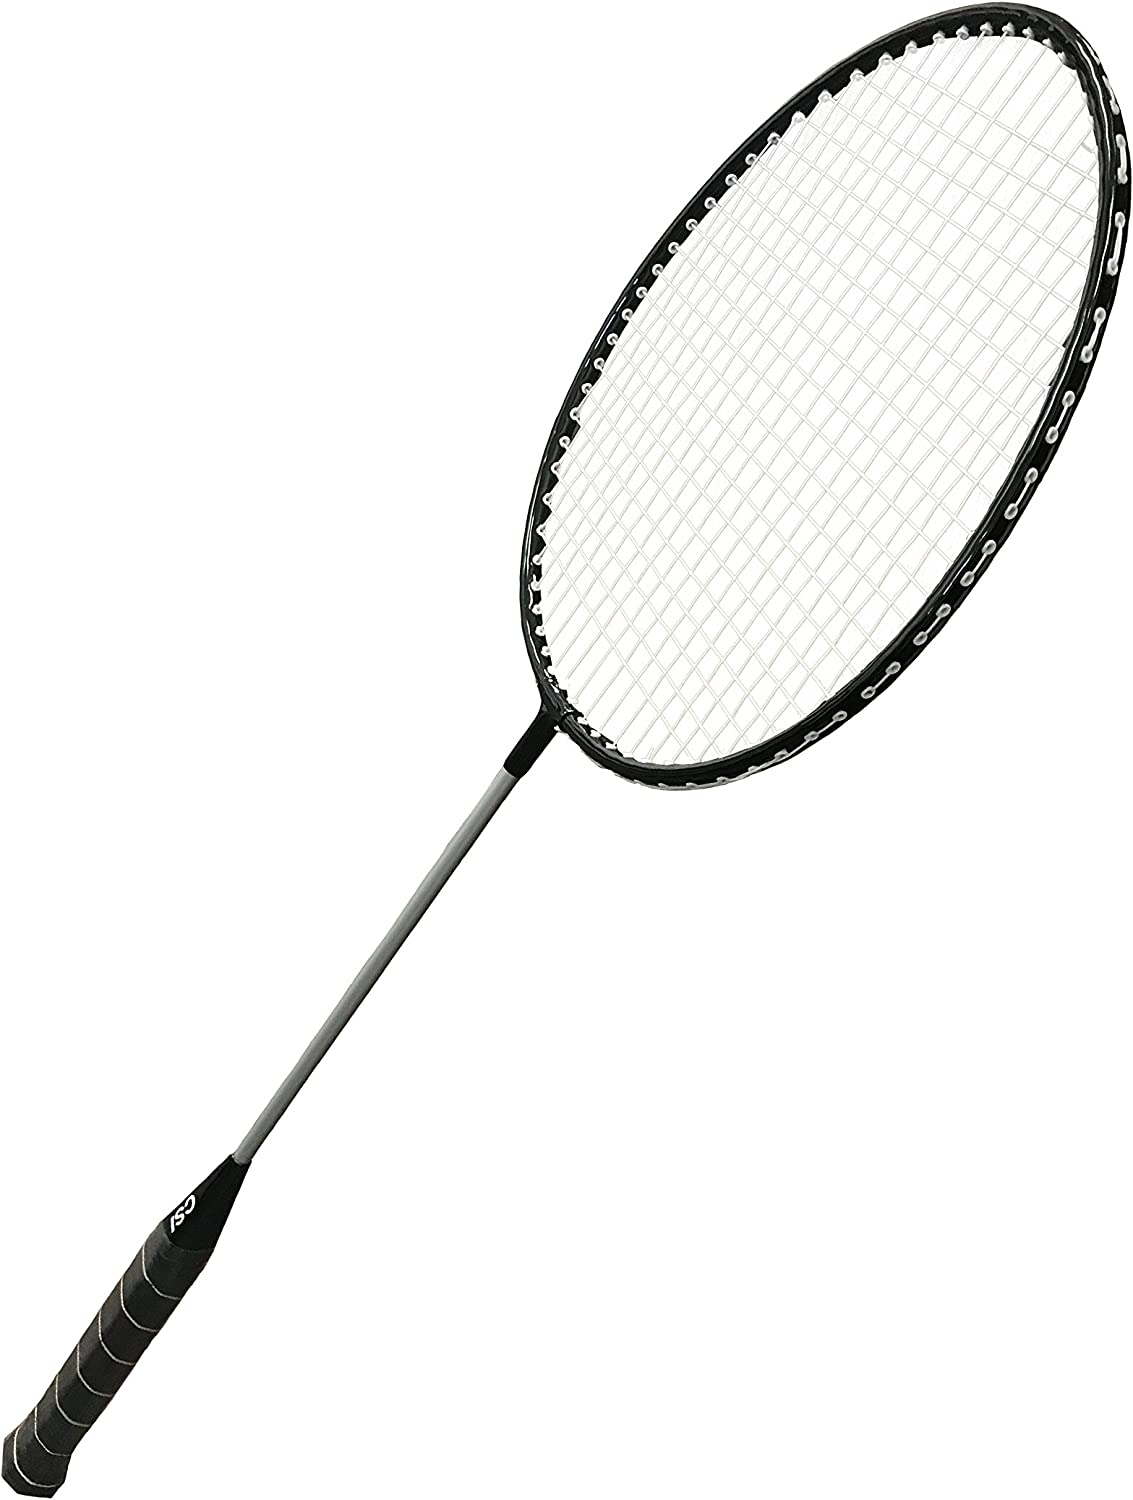 Cannon Sports Selling Badminton Steel Racket Beginner Credence Prac for Players